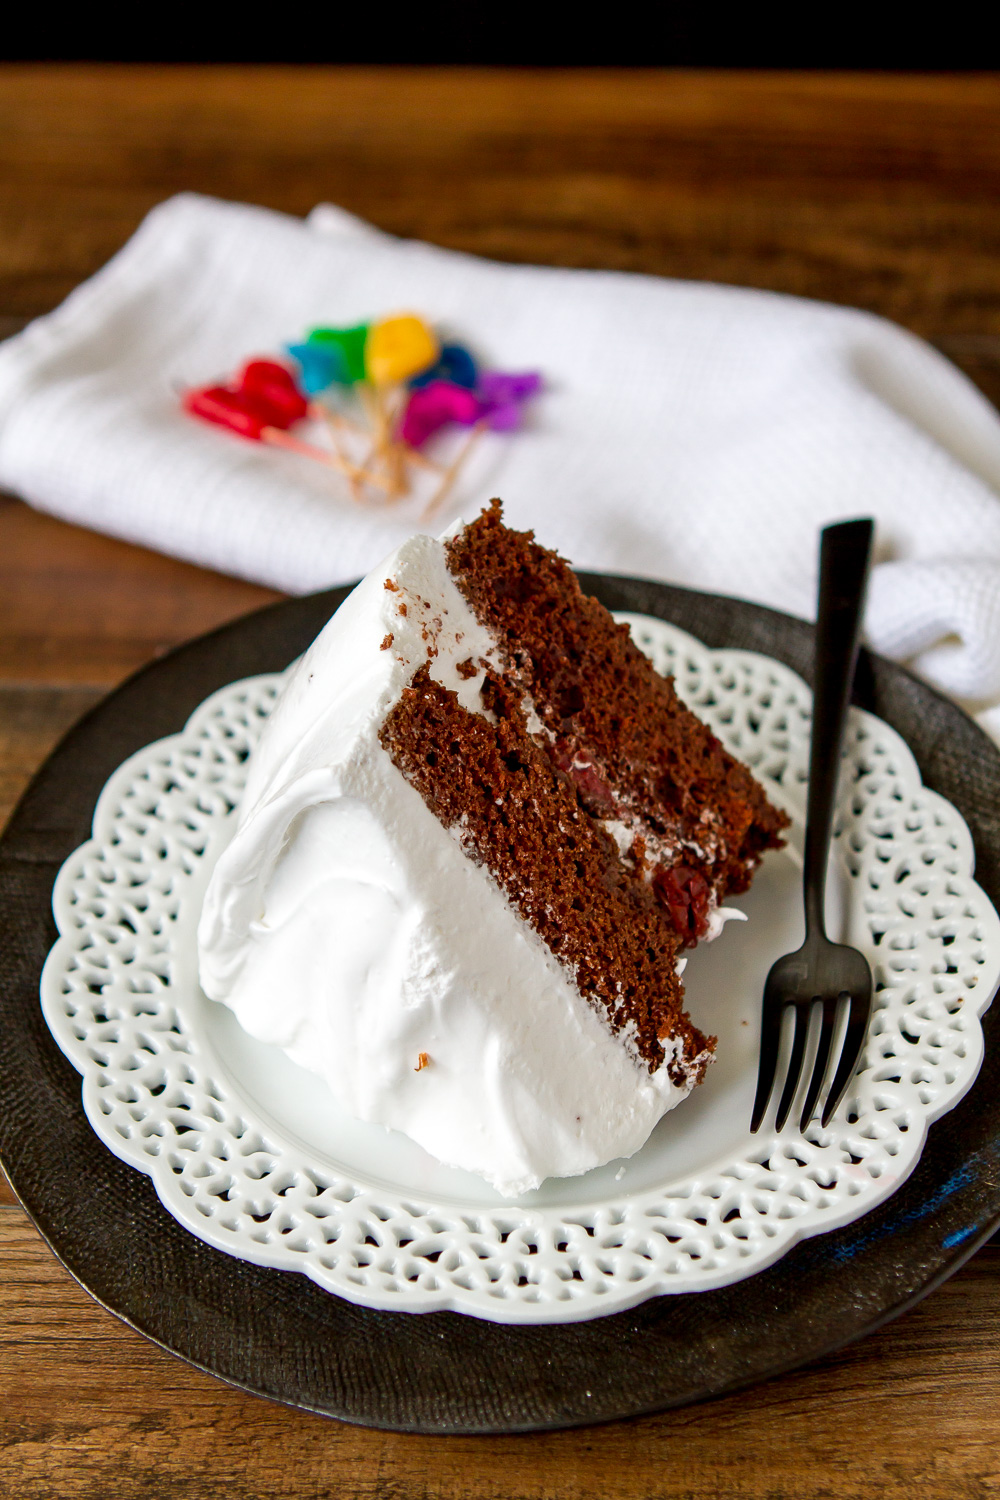 CHOCOLATE MARSHMALLOW BIRTHDAY CAKE